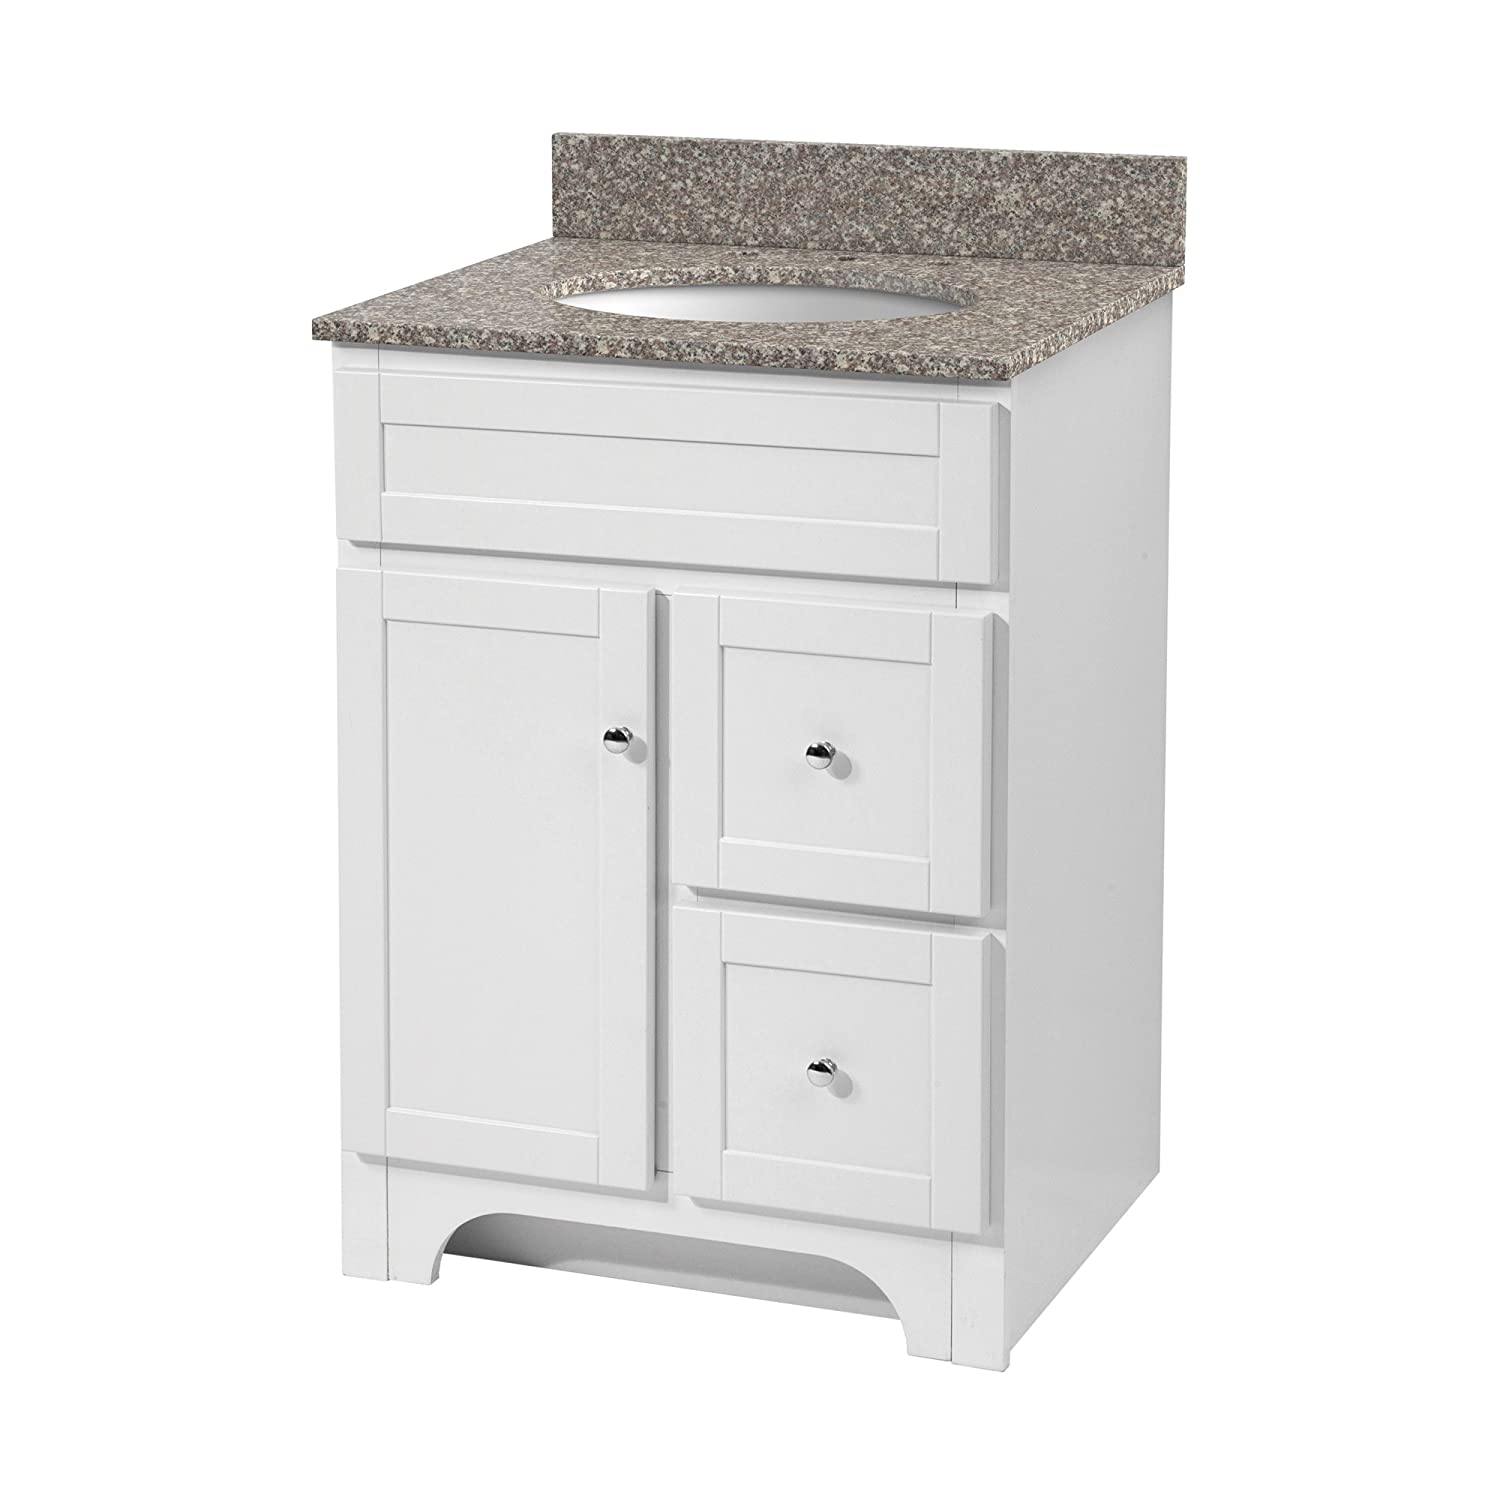 Amazon com  Foremost WRWA2421D Worthington 24 Inch White Bathroom Vanity   Home Improvement. Amazon com  Foremost WRWA2421D Worthington 24 Inch White Bathroom